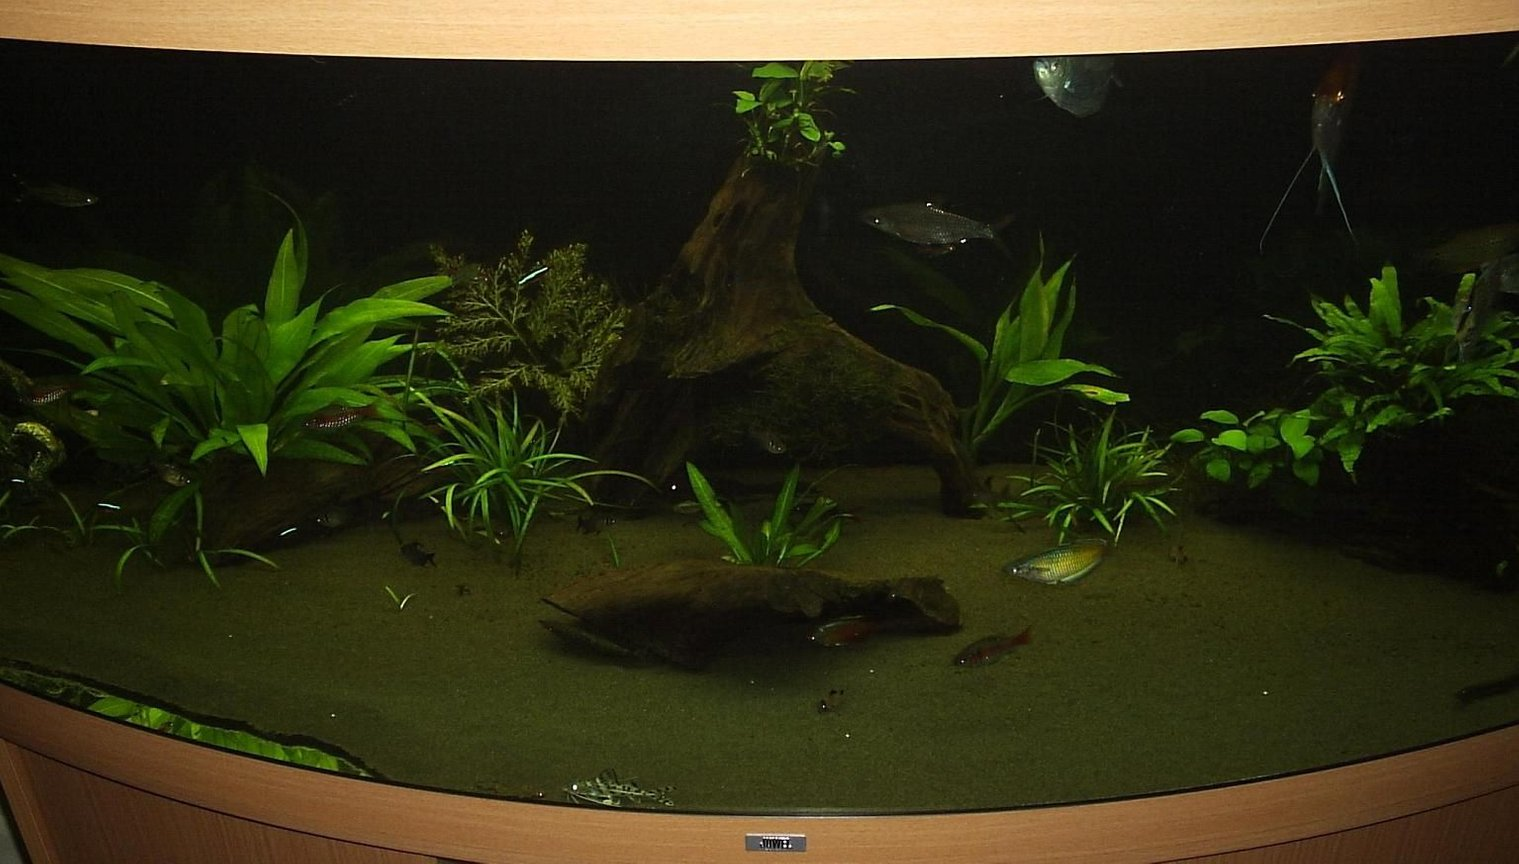 100 gallons planted tank (mostly live plants and fish) - Tank front view